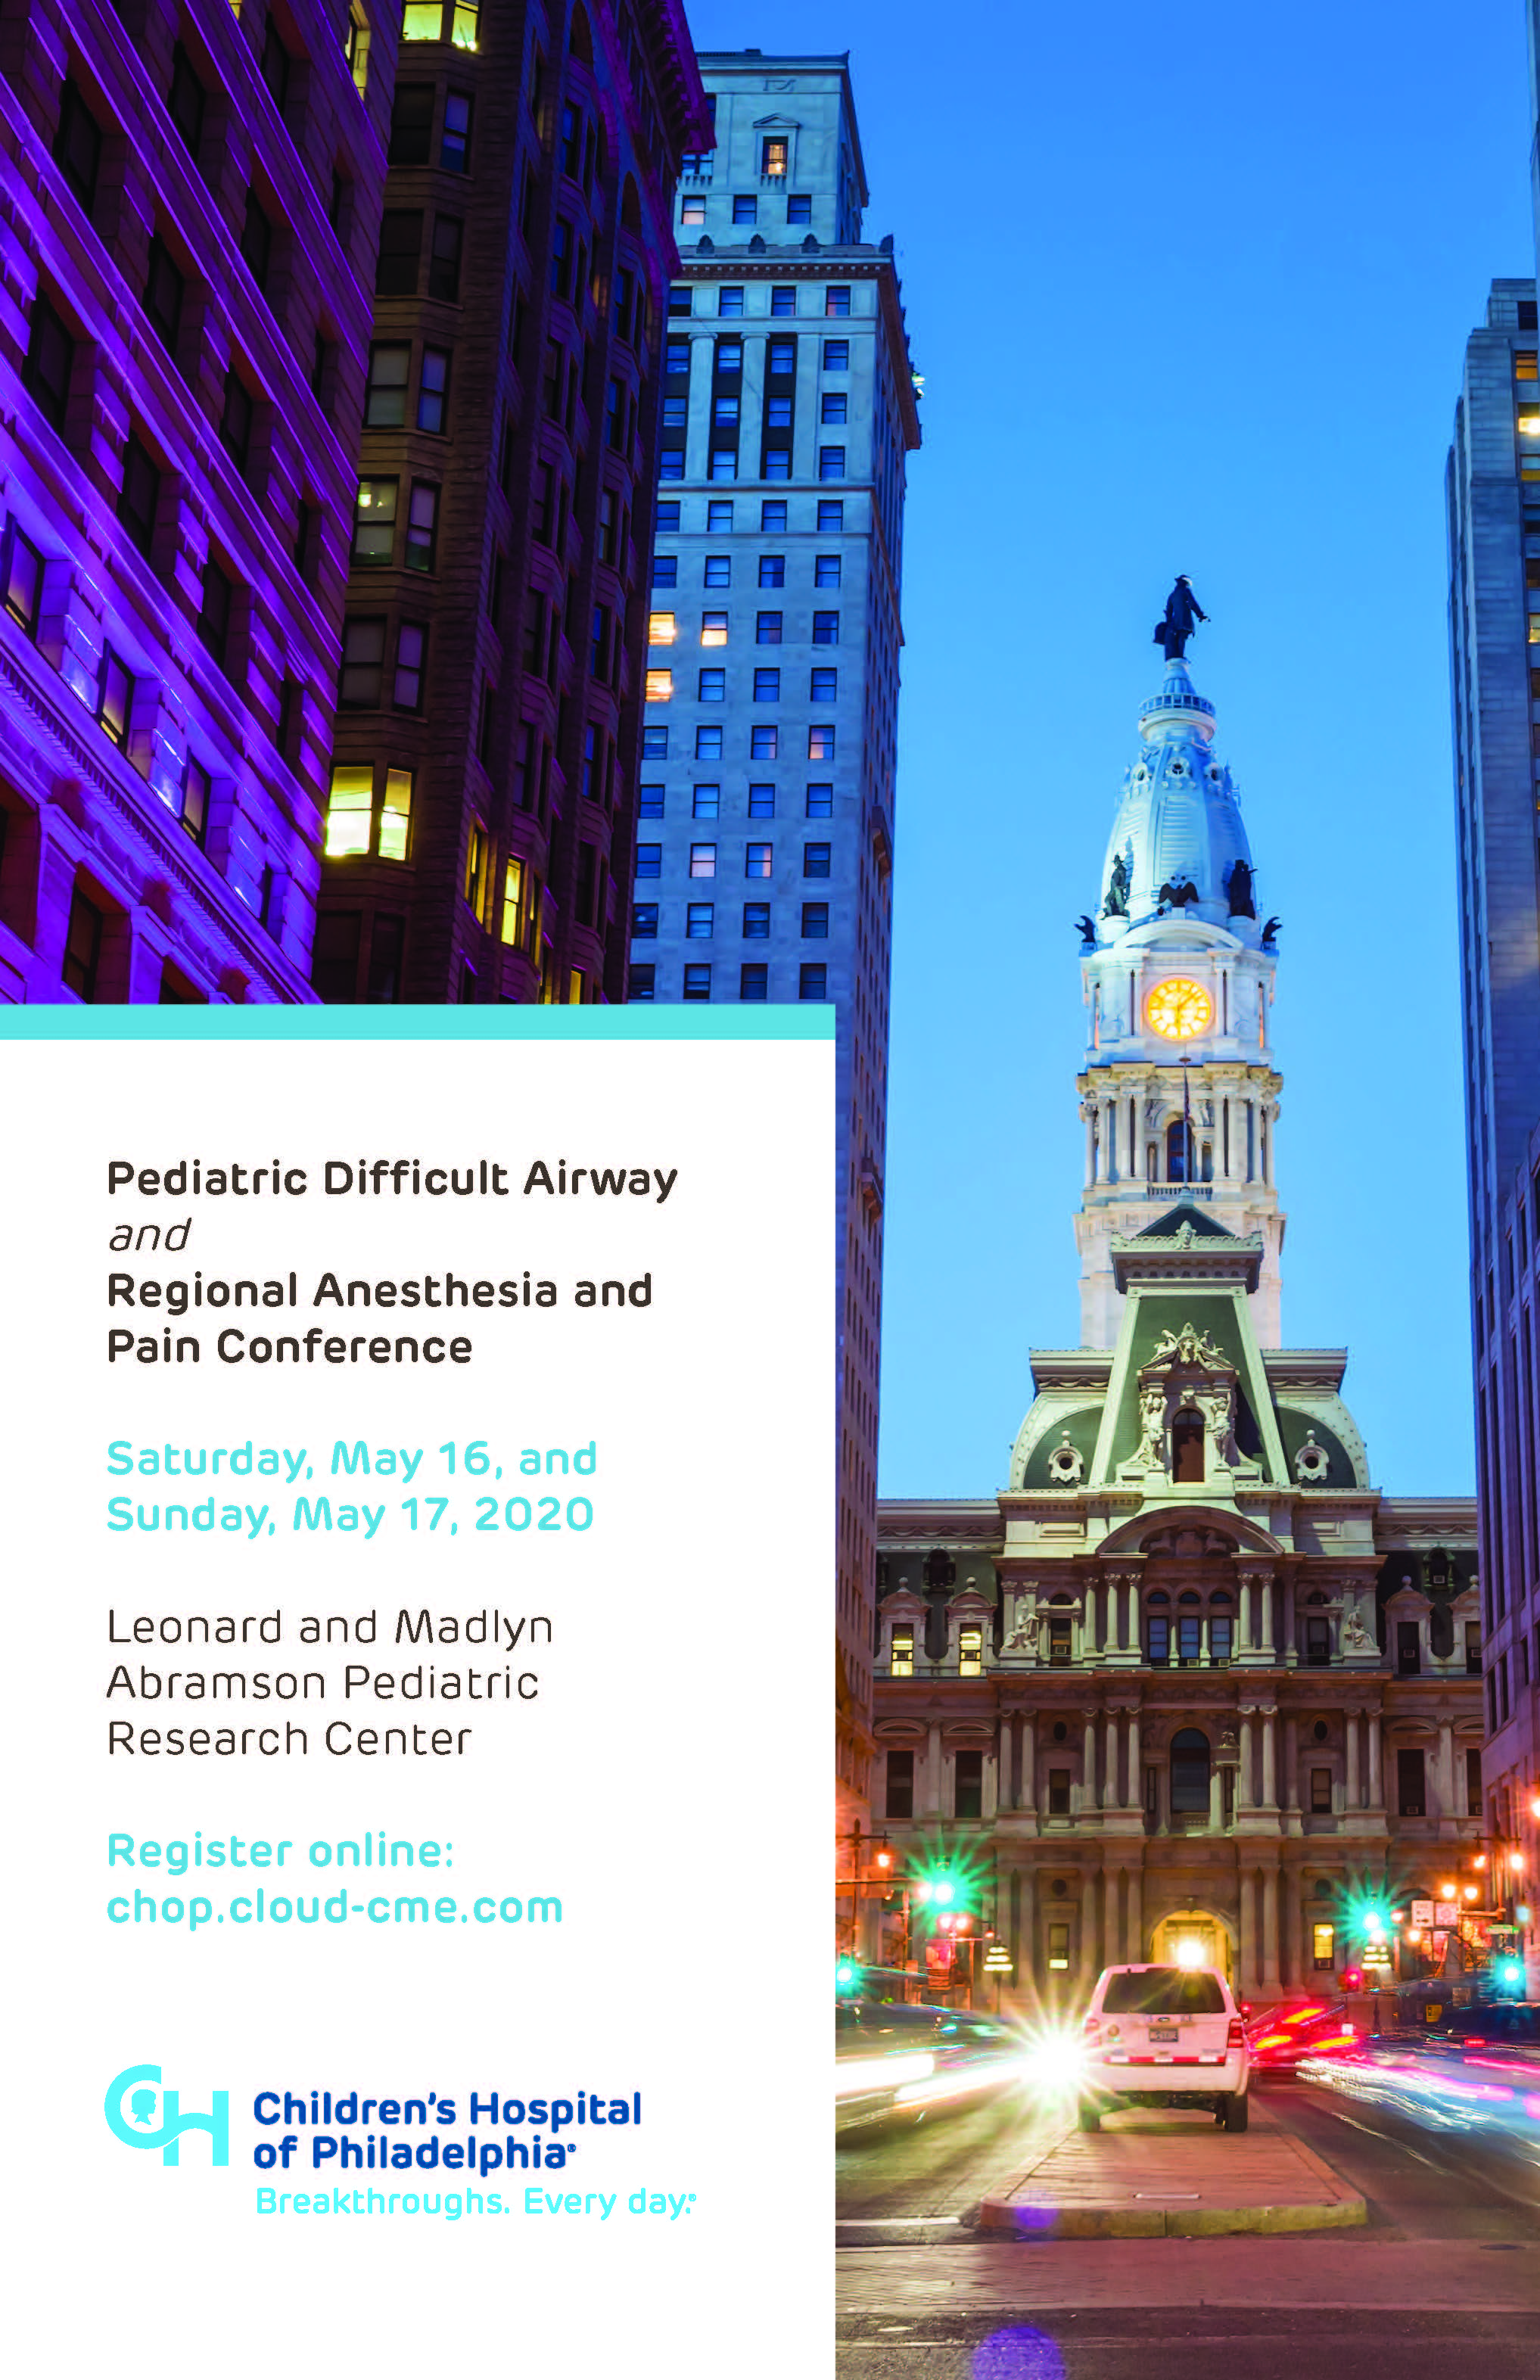 Pediatric Difficult Airway and Regional Anesthesia and Pain Conference Banner